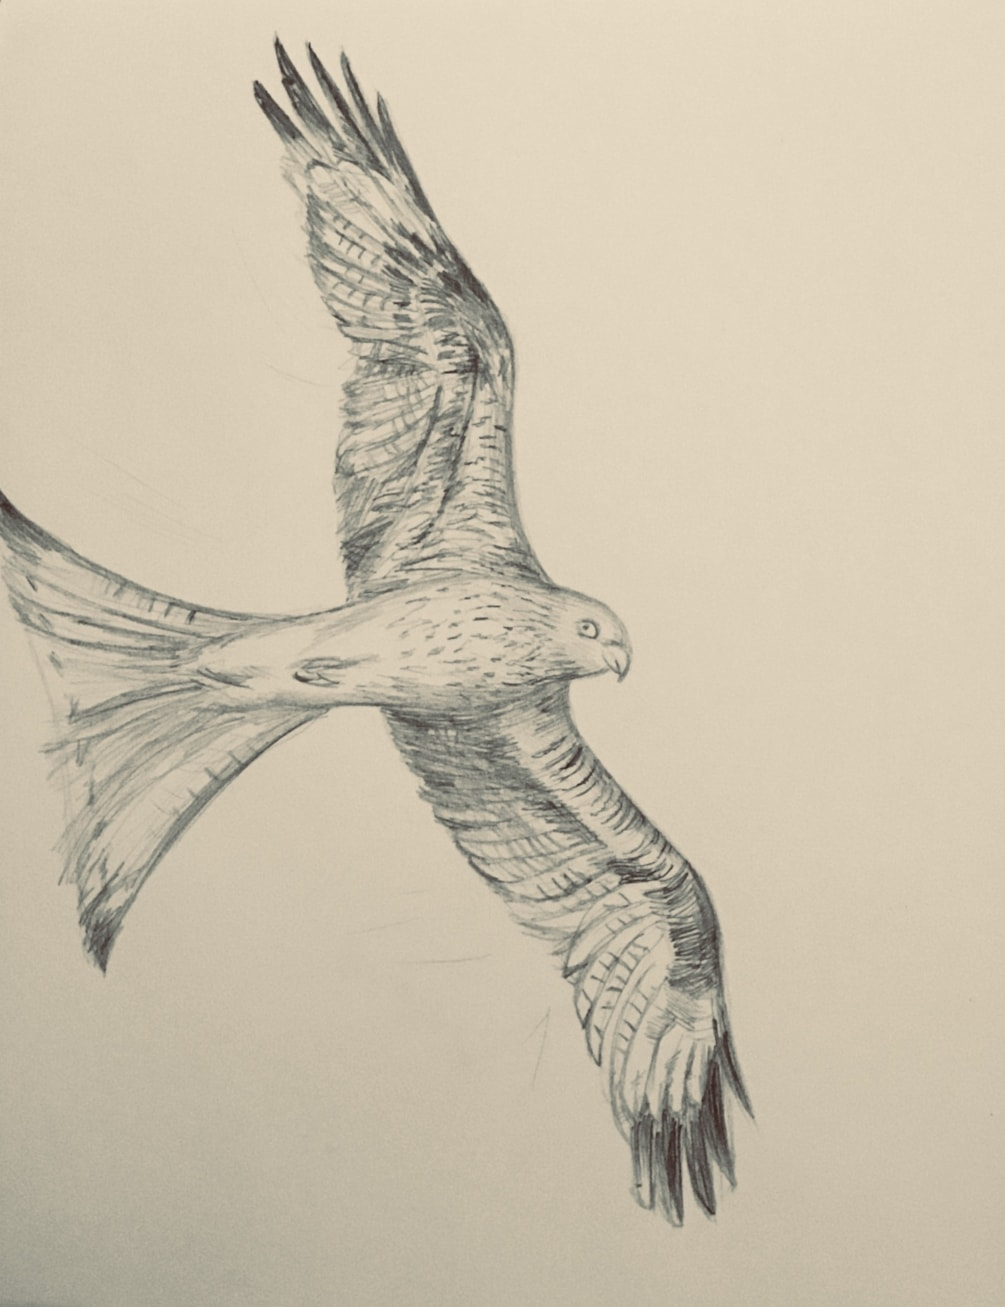 March challenge- The Red Kite